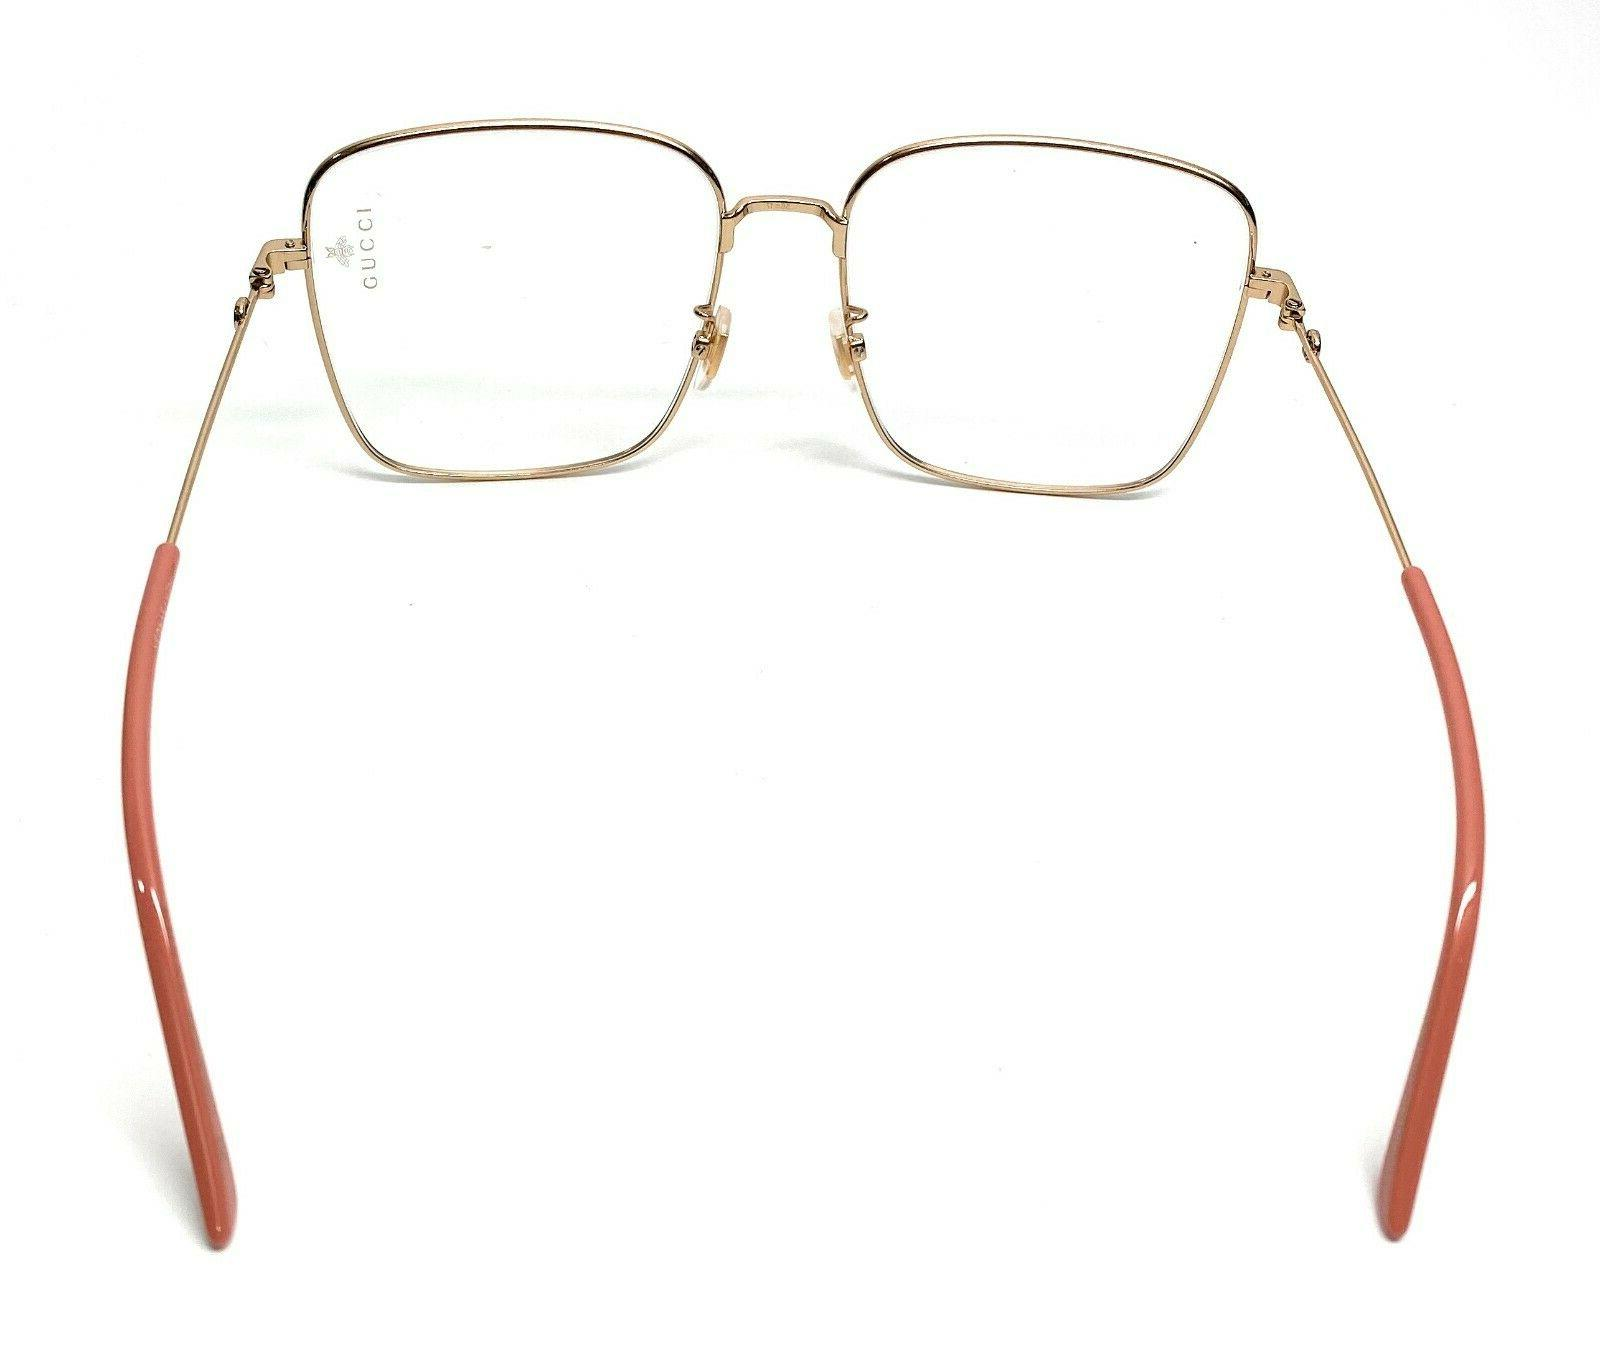 New Gucci 001 Women's Authentic Eyeglasses